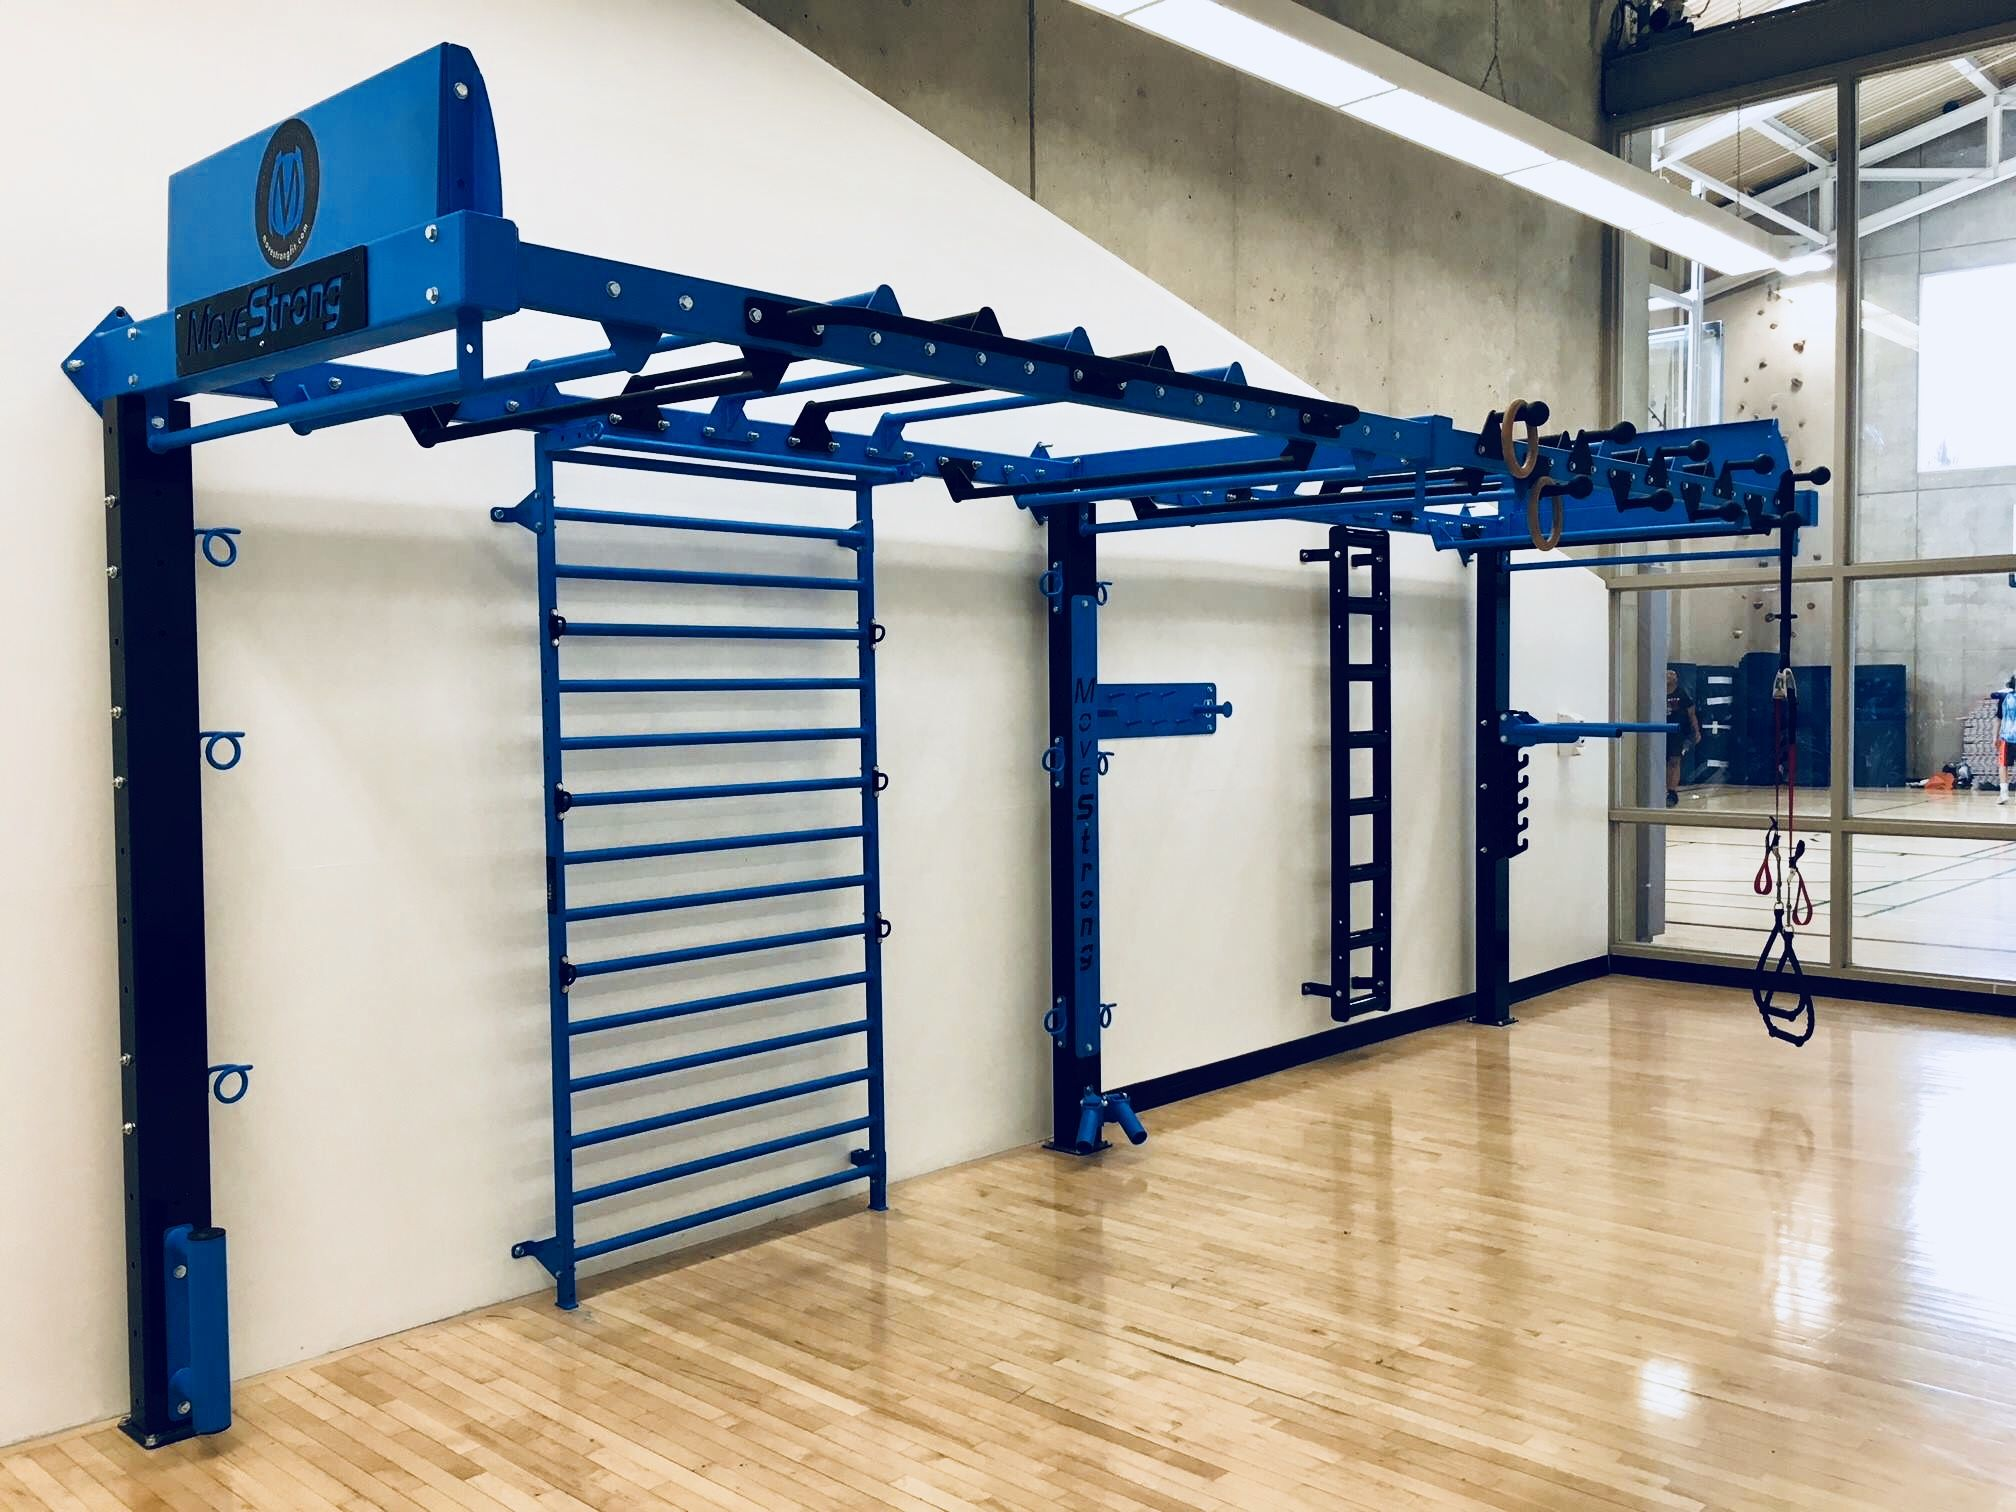 Ymca toronto chooses movestrong for space efficient fts fitness